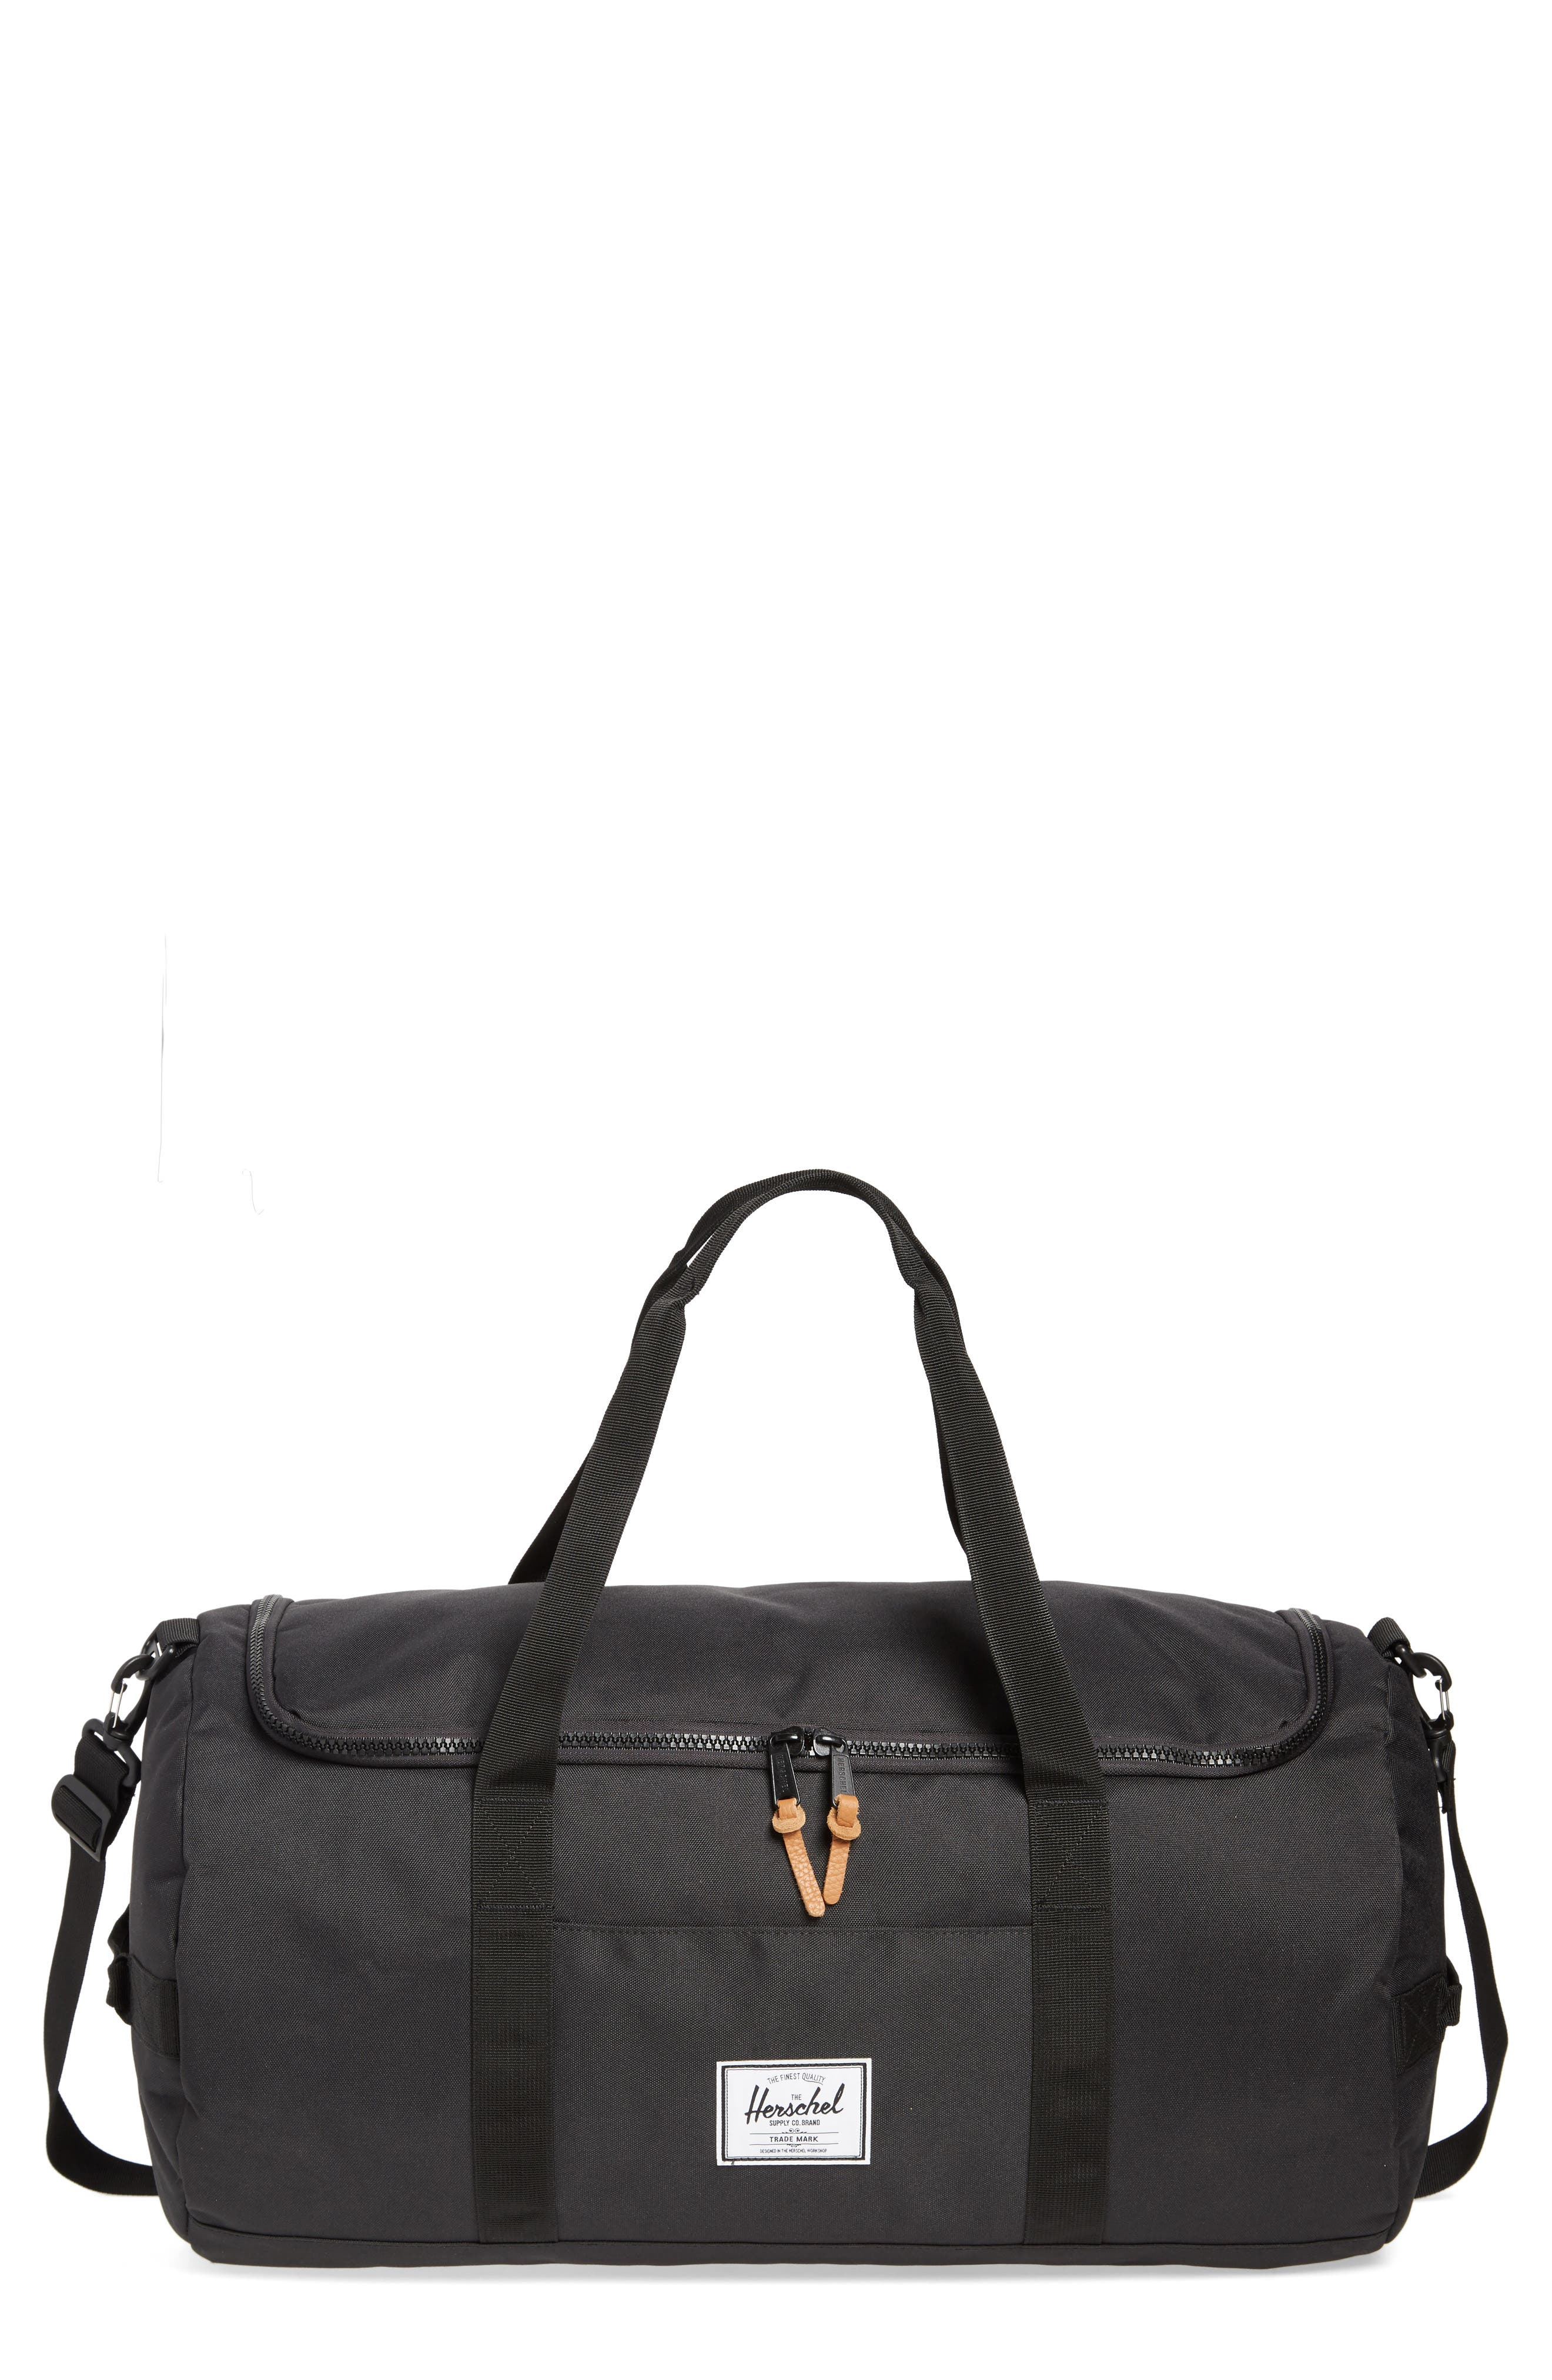 Sutton Duffel Bag,                         Main,                         color, BLACK